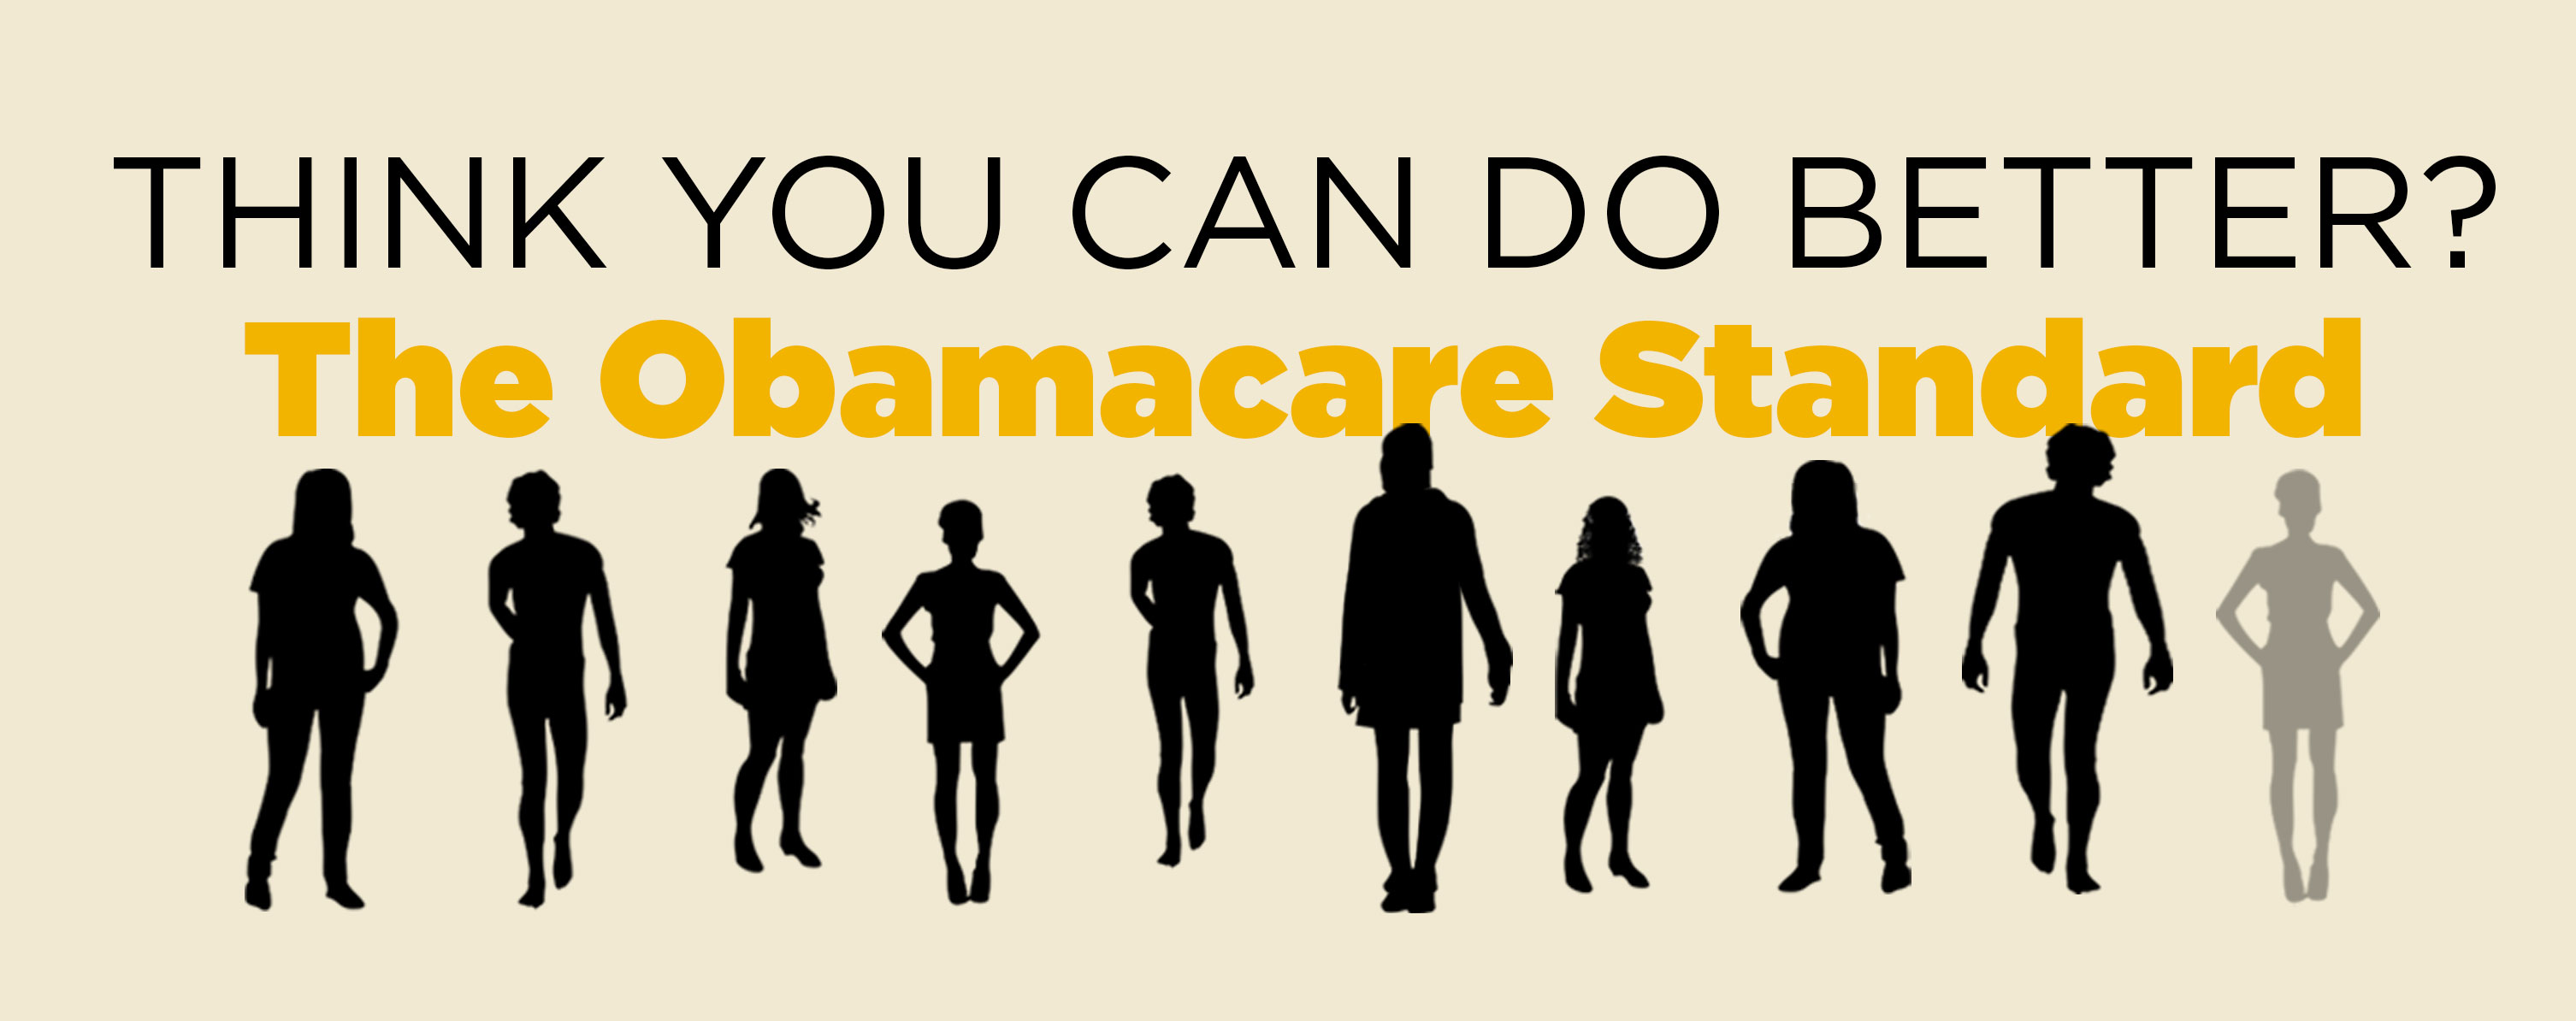 Think You Can Do Better? The Obamacare Standard